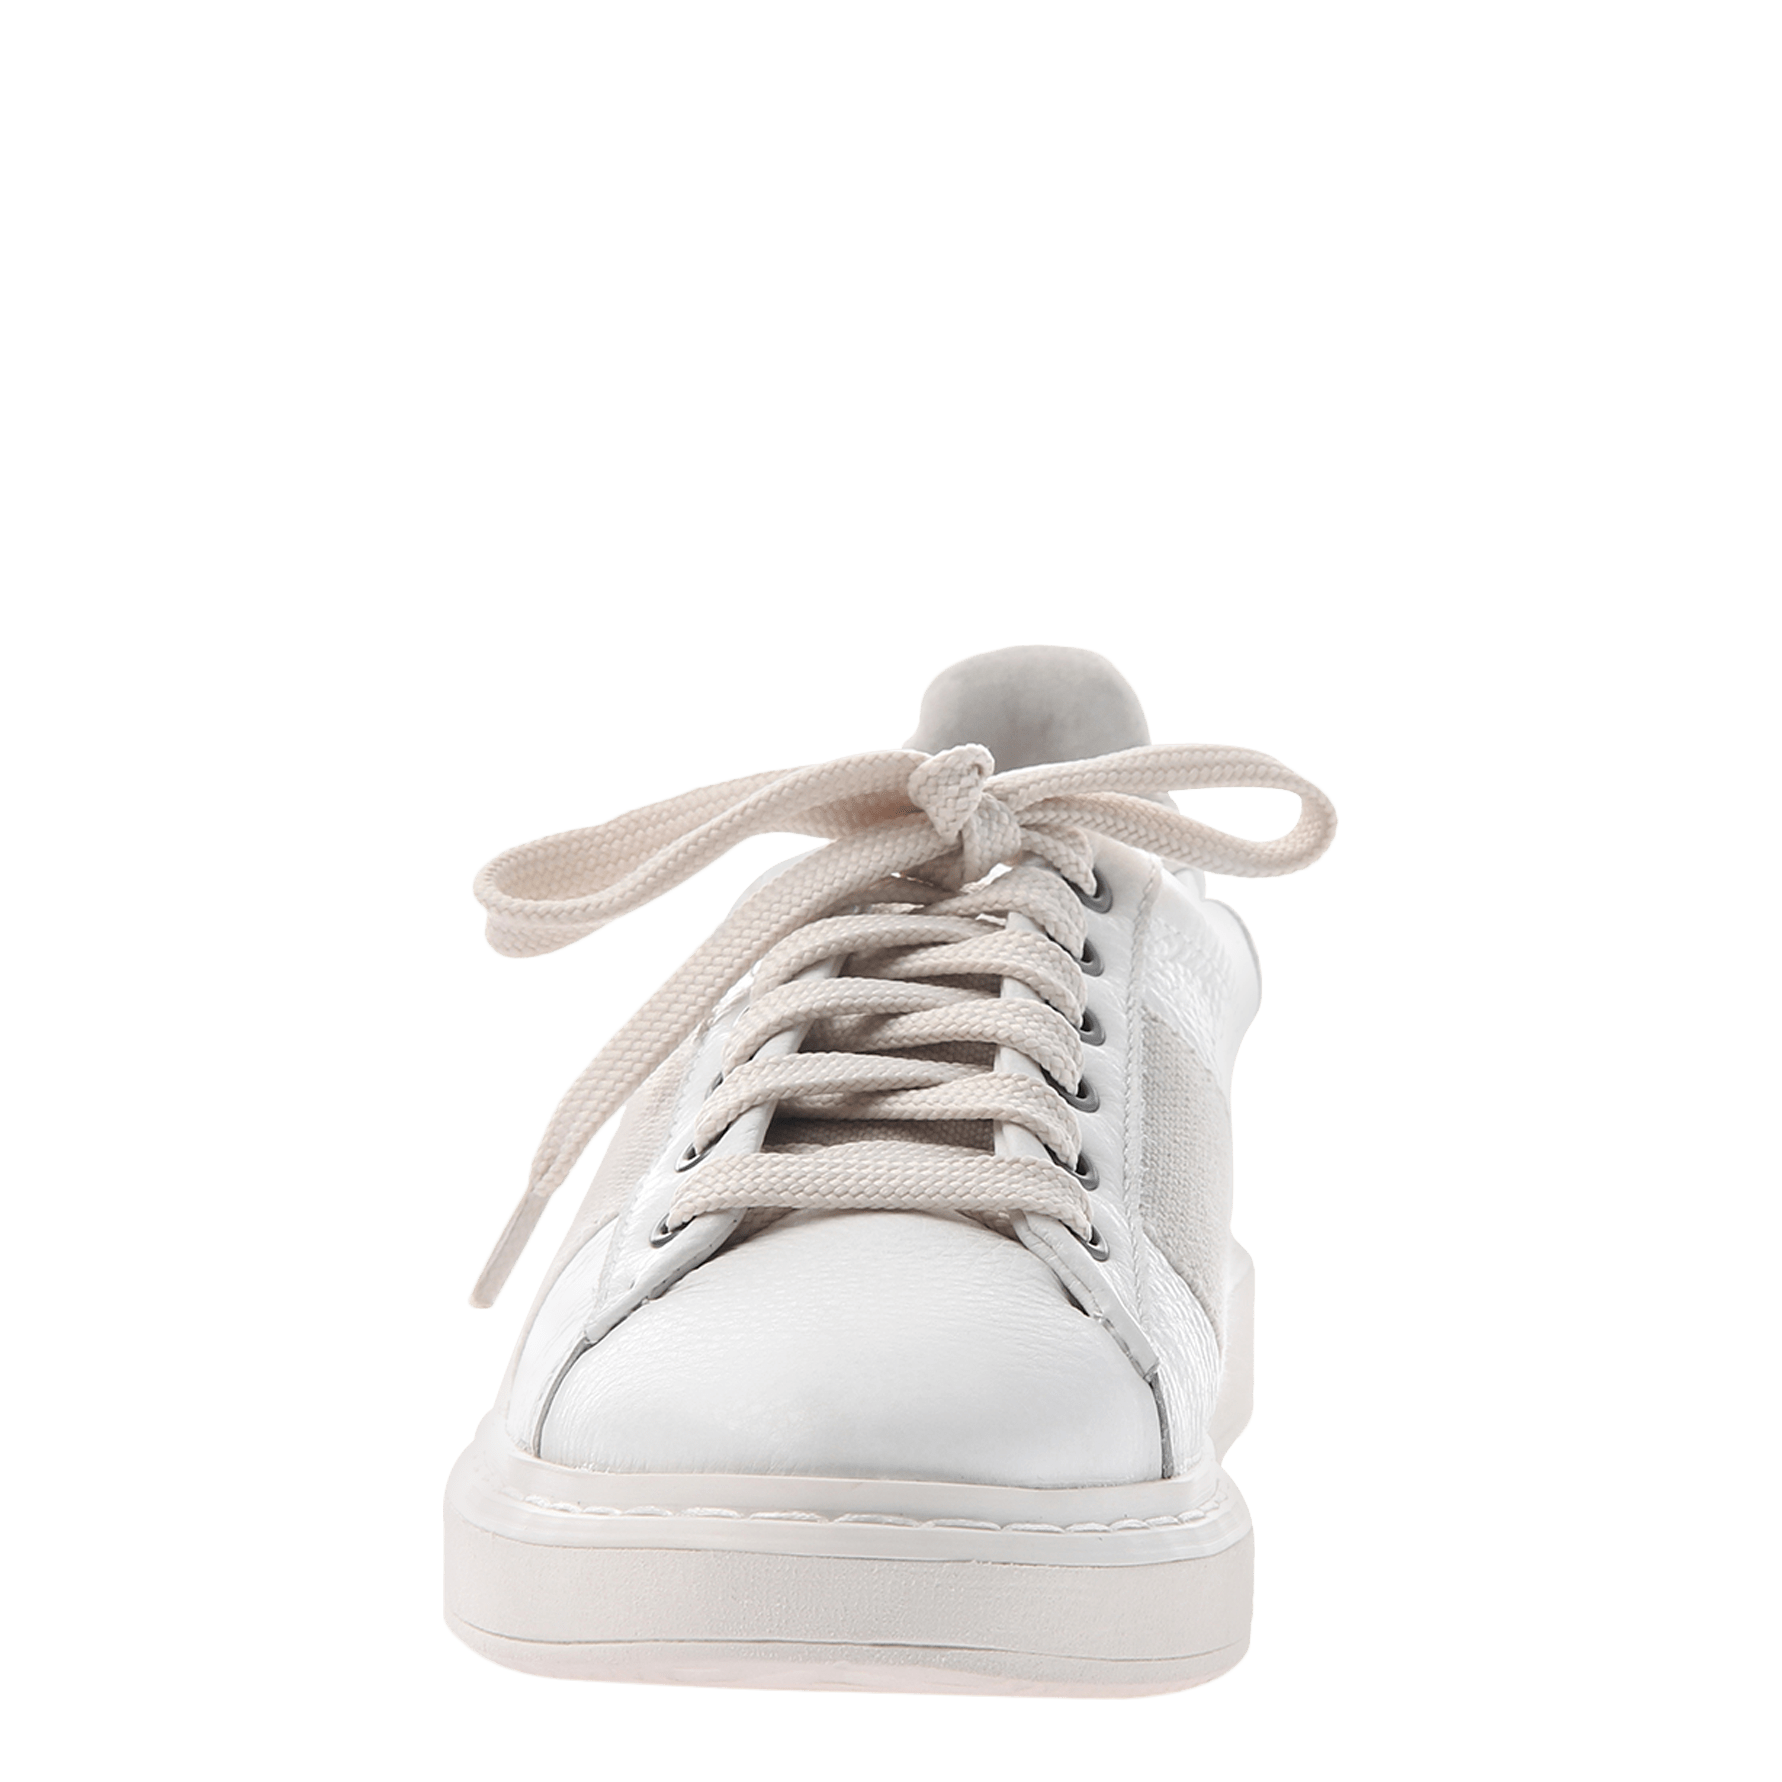 White shoe png. Normcore in sneakers women